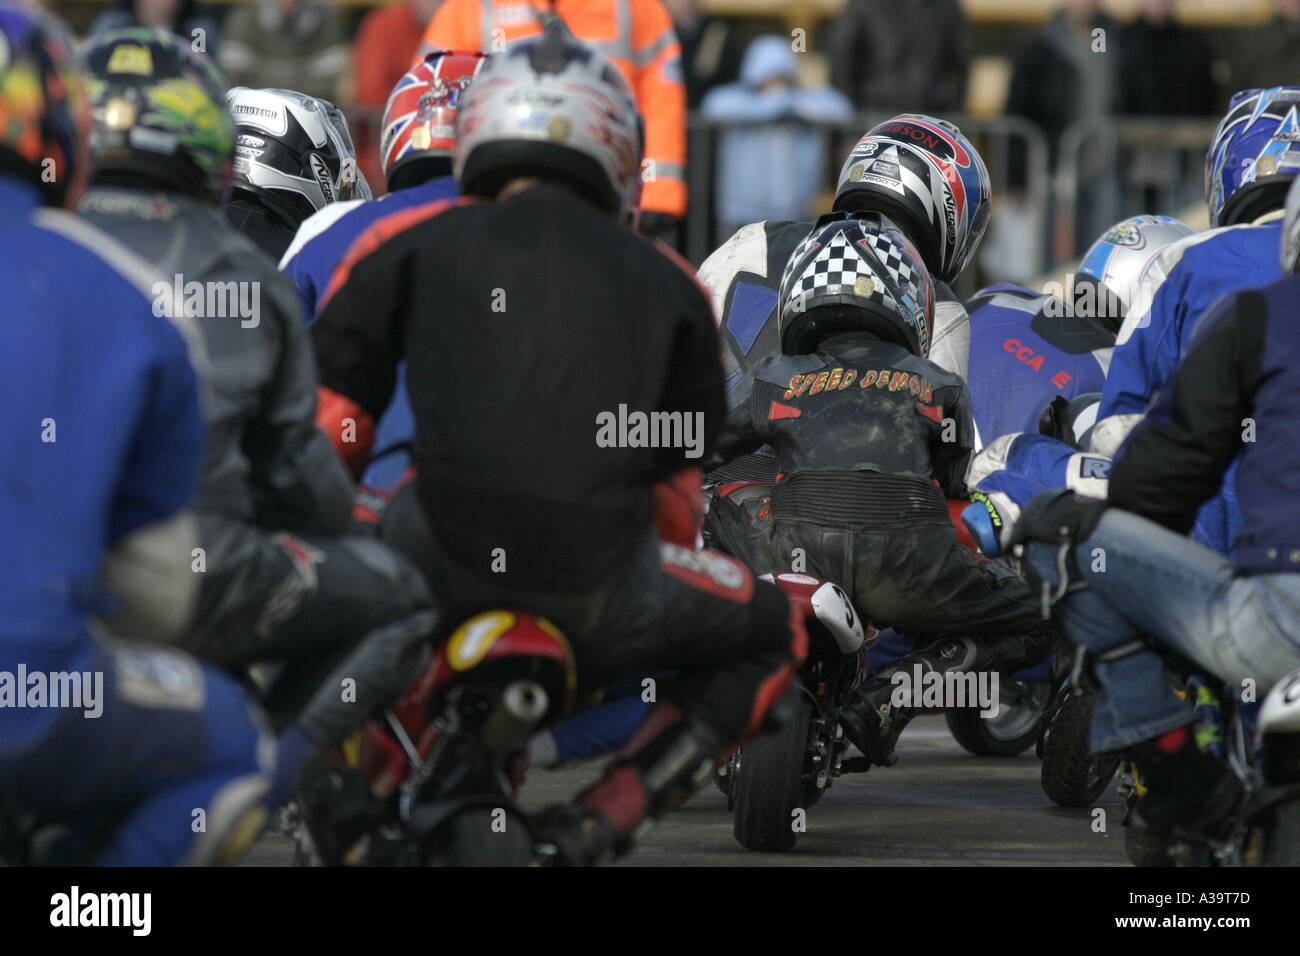 Senior minibike competitors rear view as the field takes a corner at demonstration Motorcycle and motorsport show - Stock Image